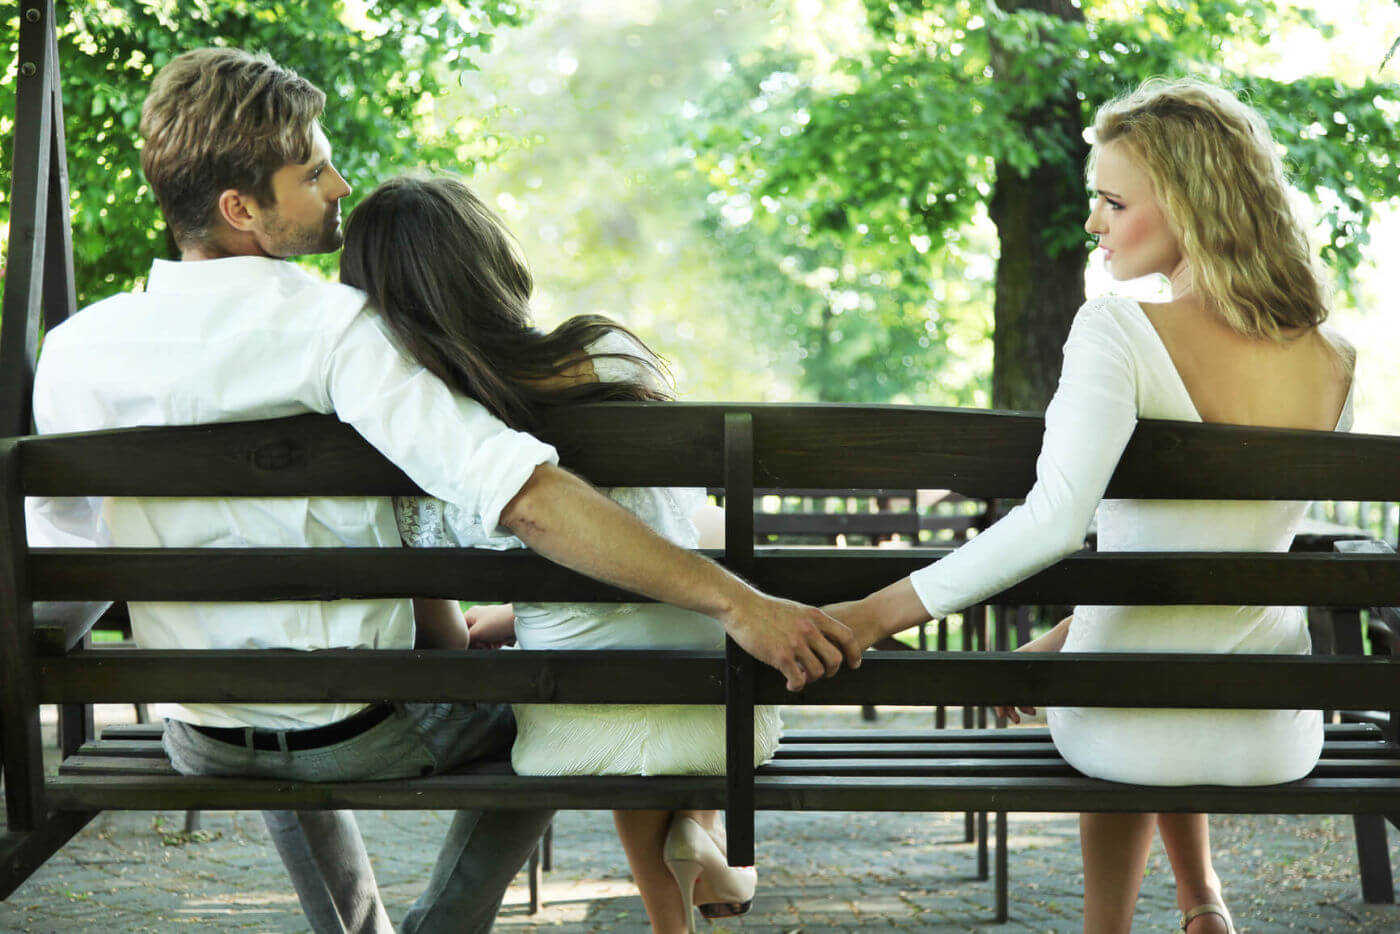 What to do when your ex boyfriend starts dating someone else